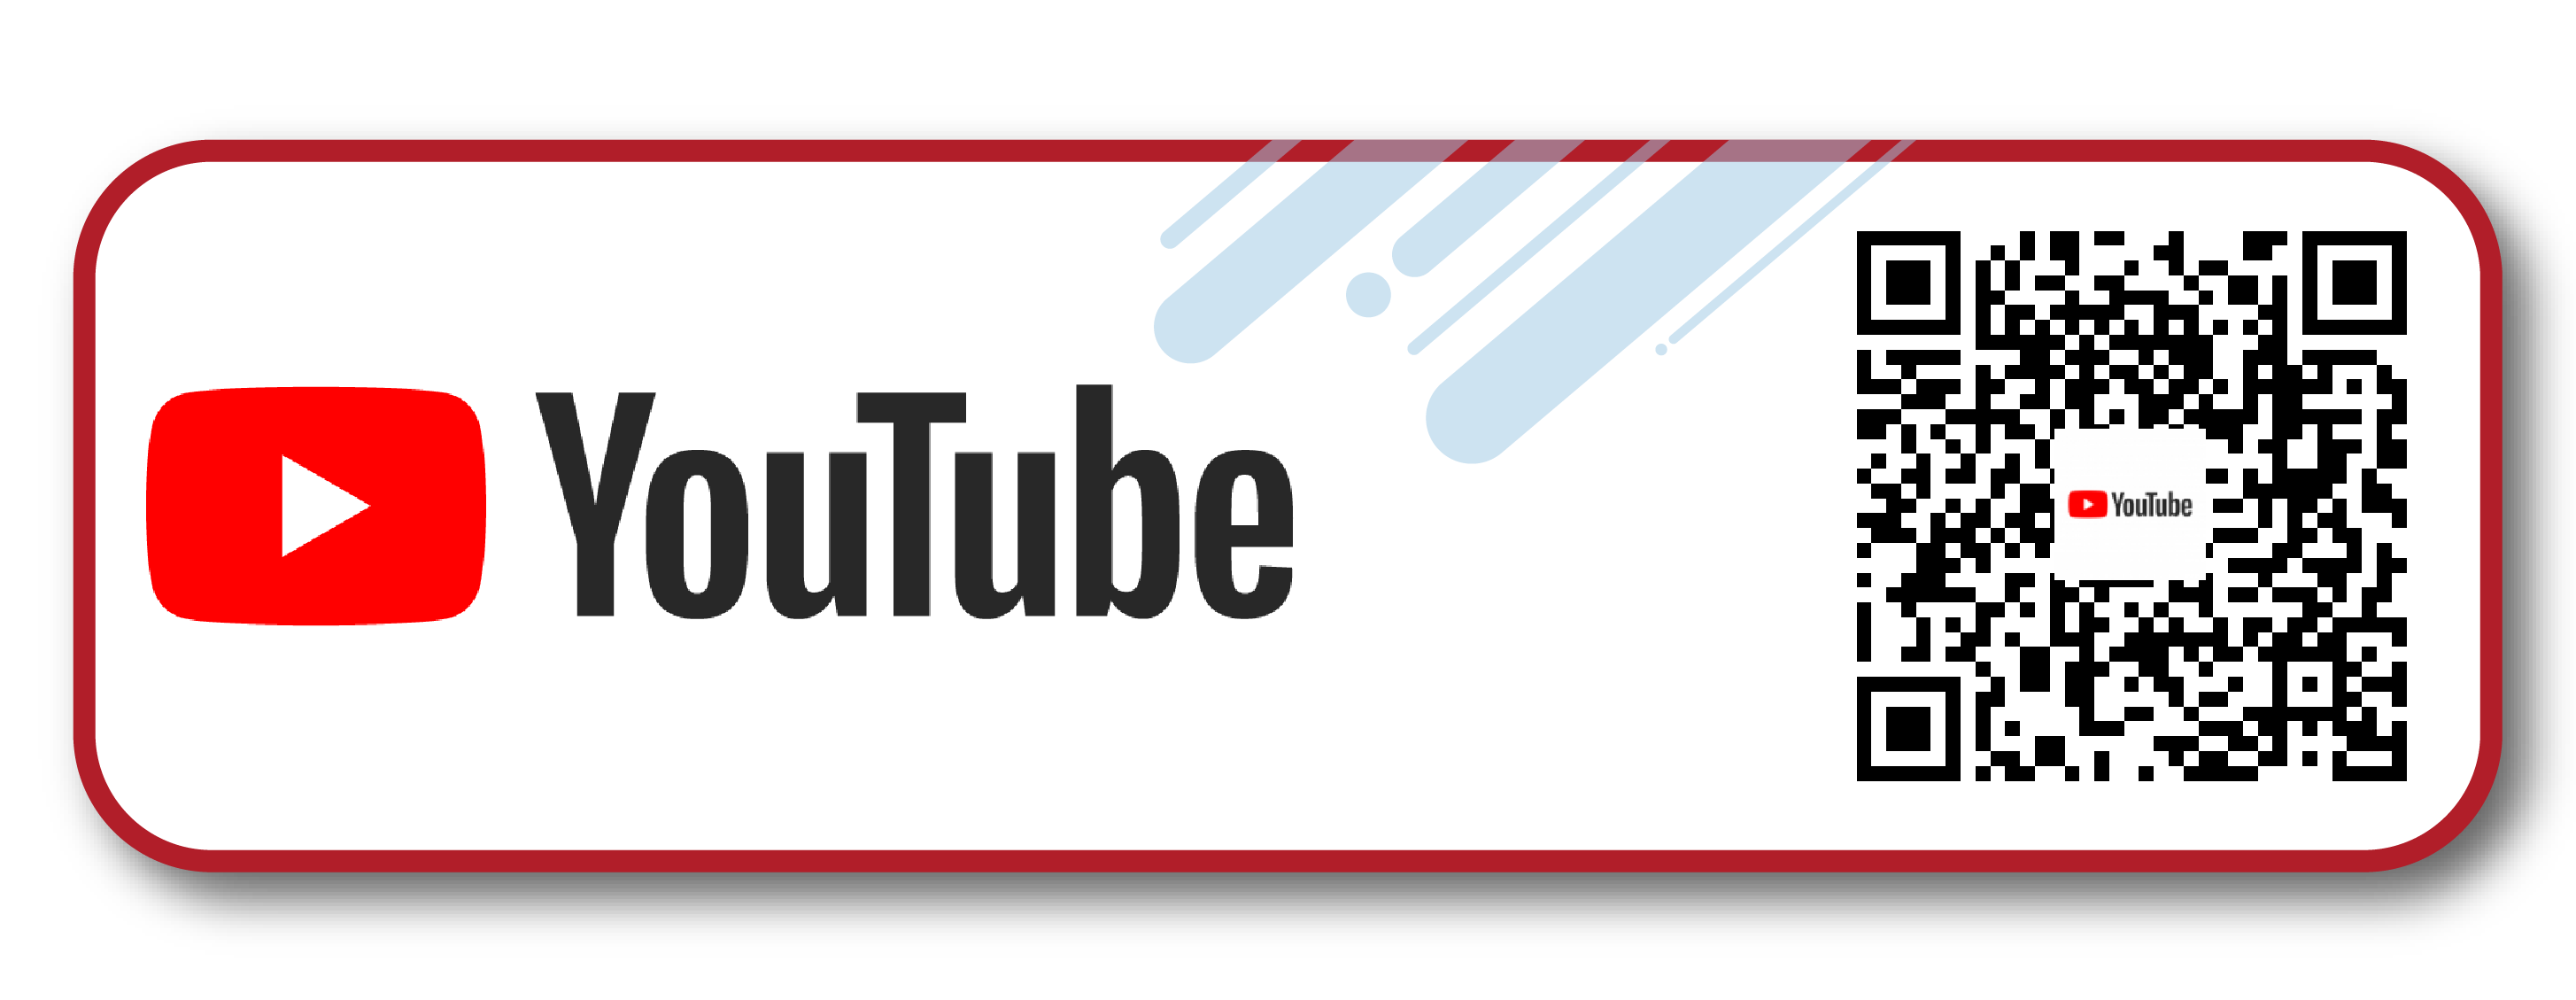 Youtube_BT